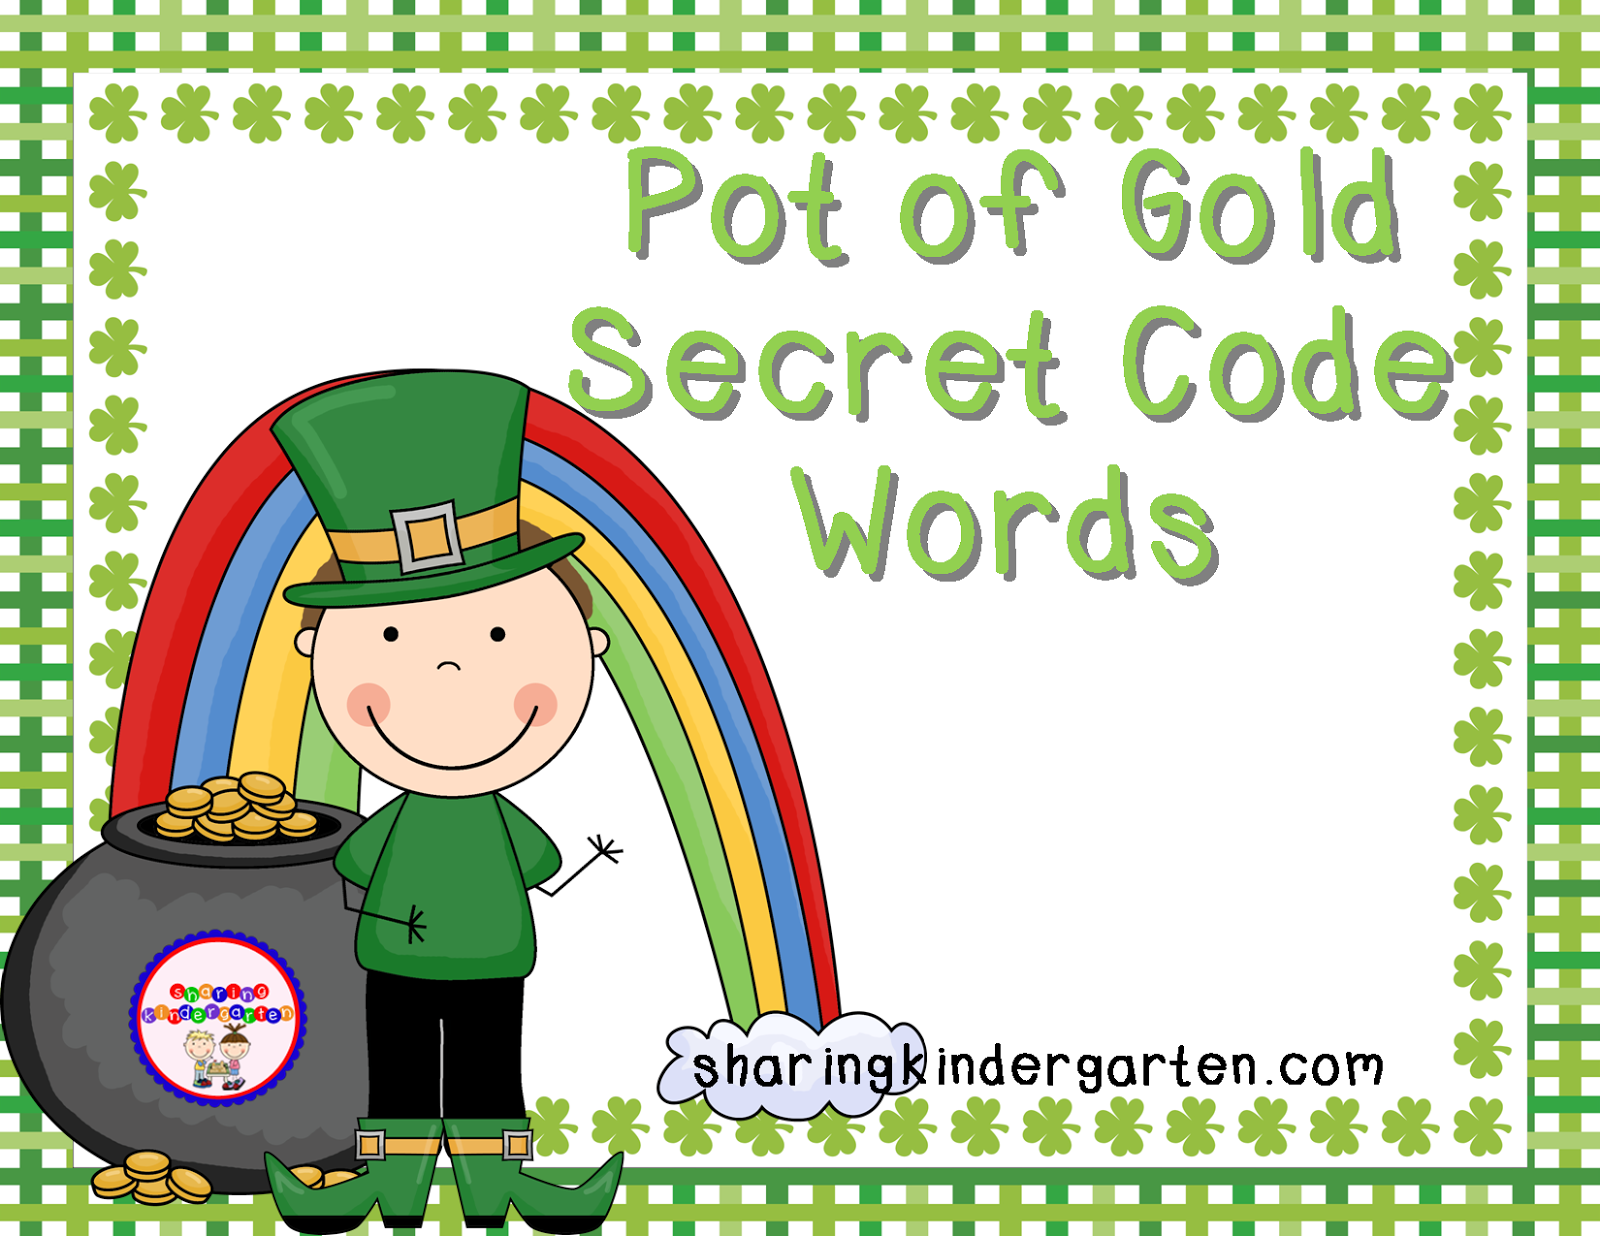 http://www.teacherspayteachers.com/Product/Pot-of-Gold-Secret-Code-Words-211667